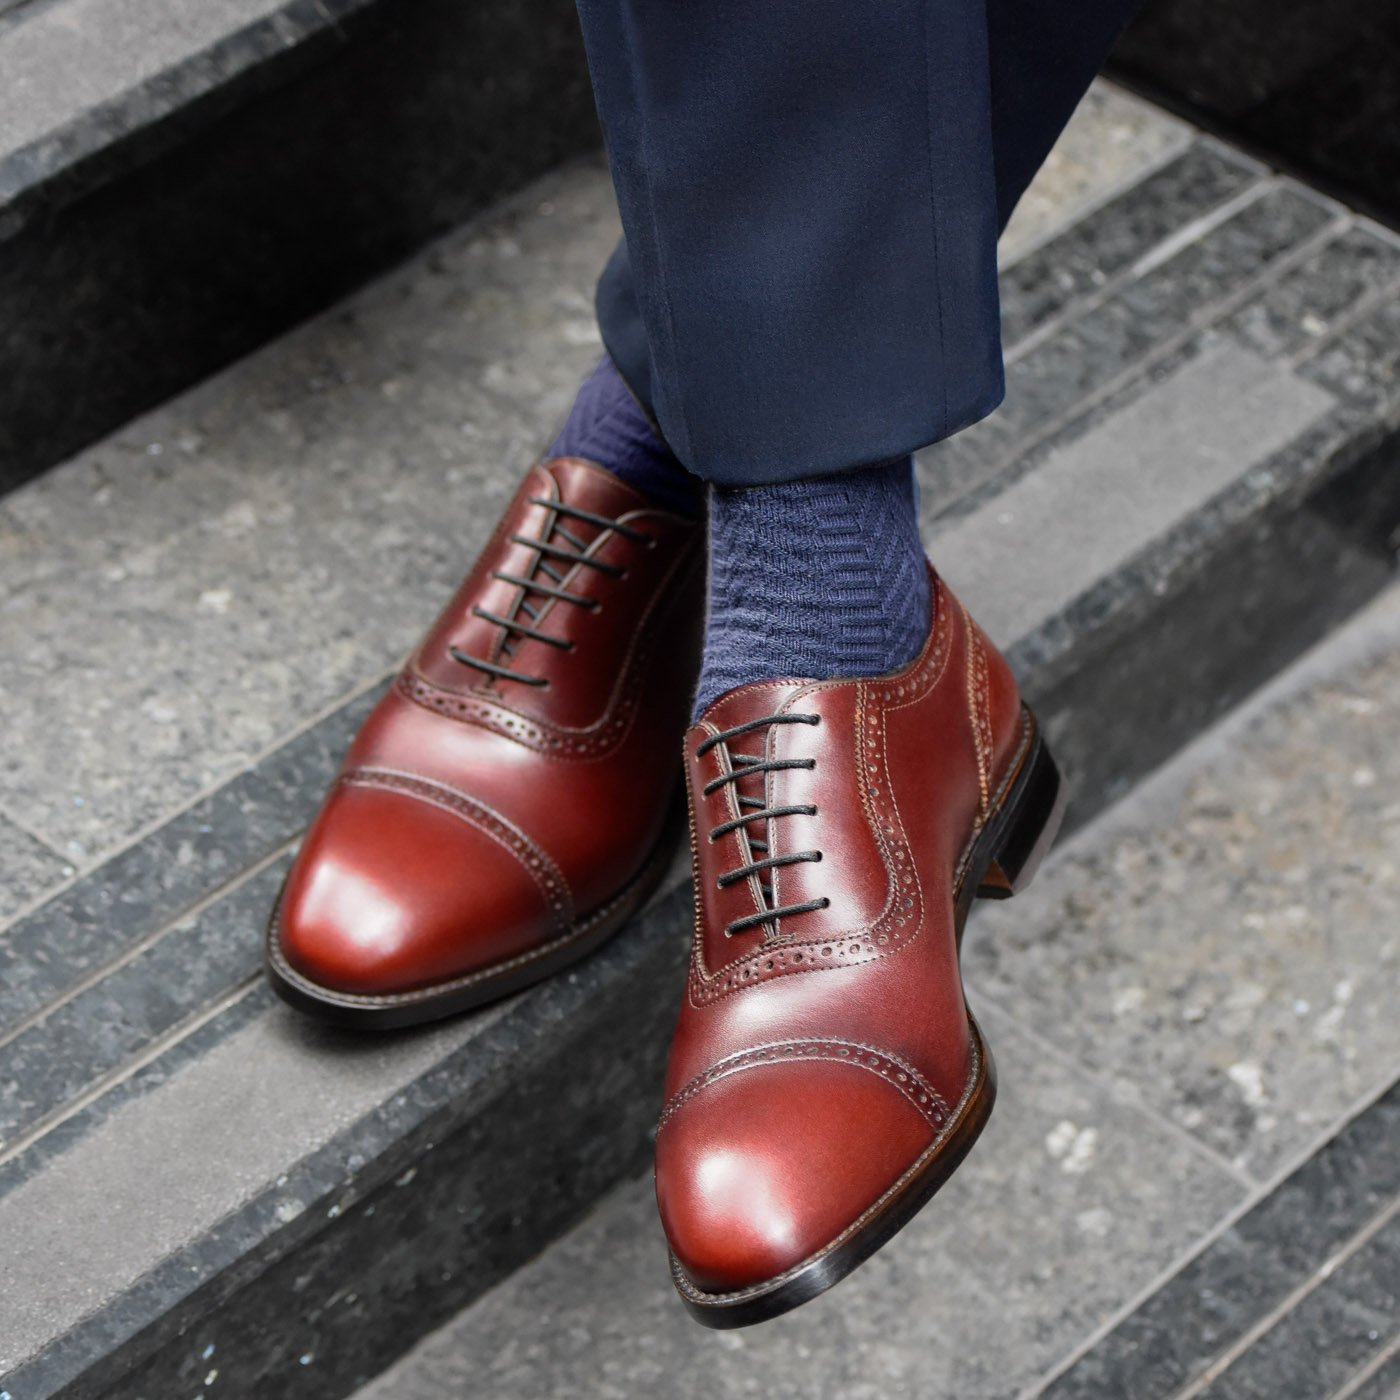 Should I Use Insoles in Dress Shoes